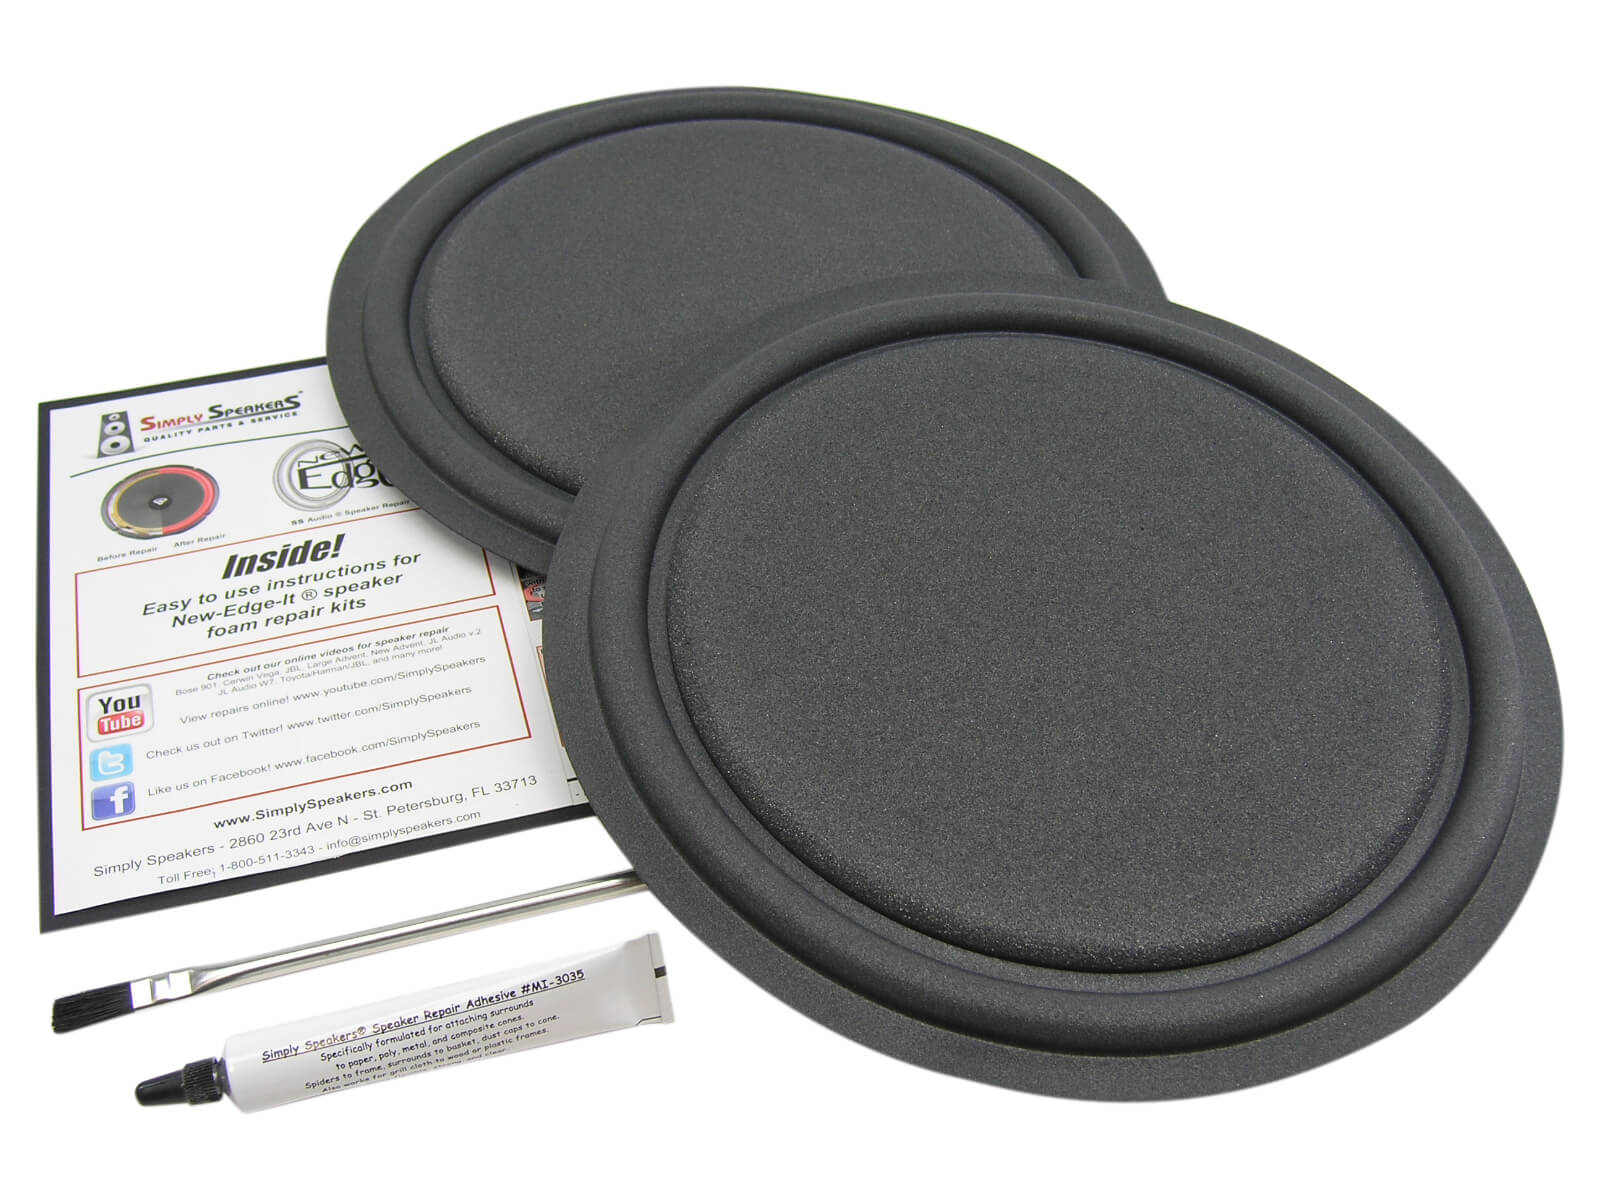 ESS Speaker Passive Radiator Repair Kit